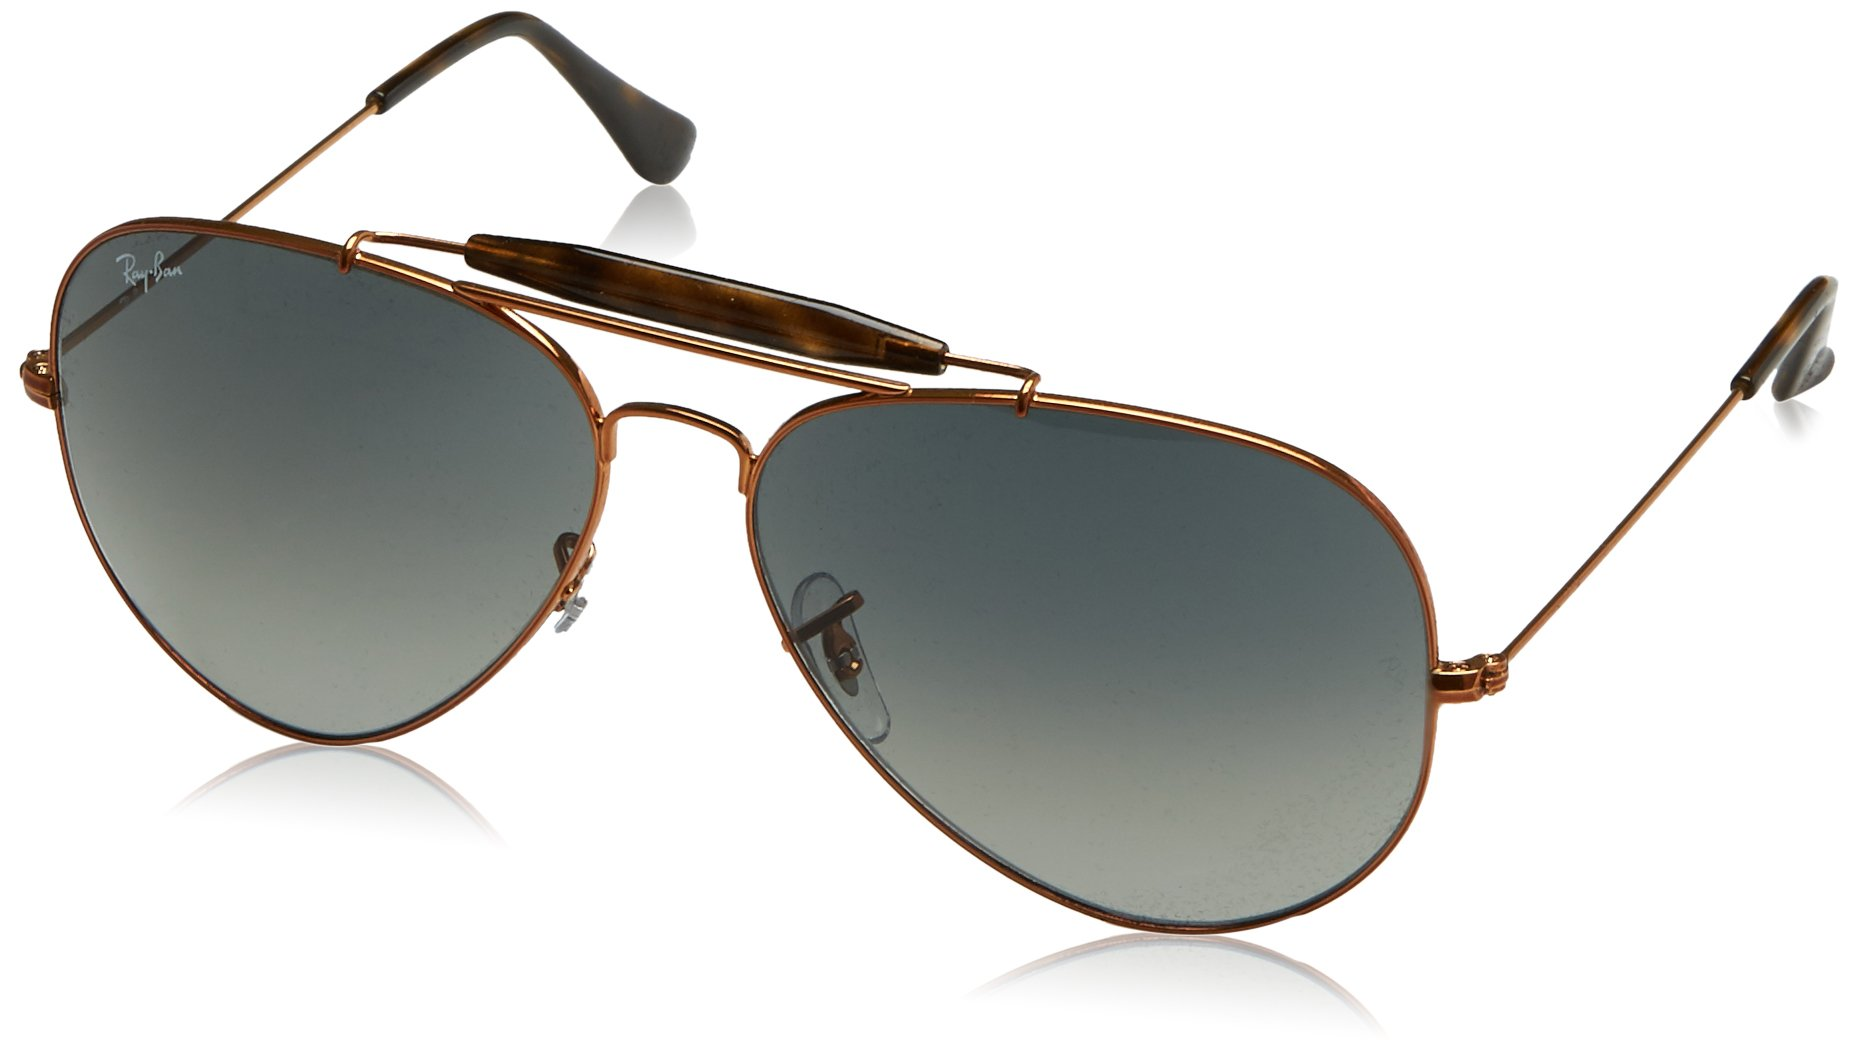 Ray-Ban Men's Outdoorsman Ii Aviator Sunglasses, Shiny Bronze, 62 mm by Ray-Ban (Image #1)